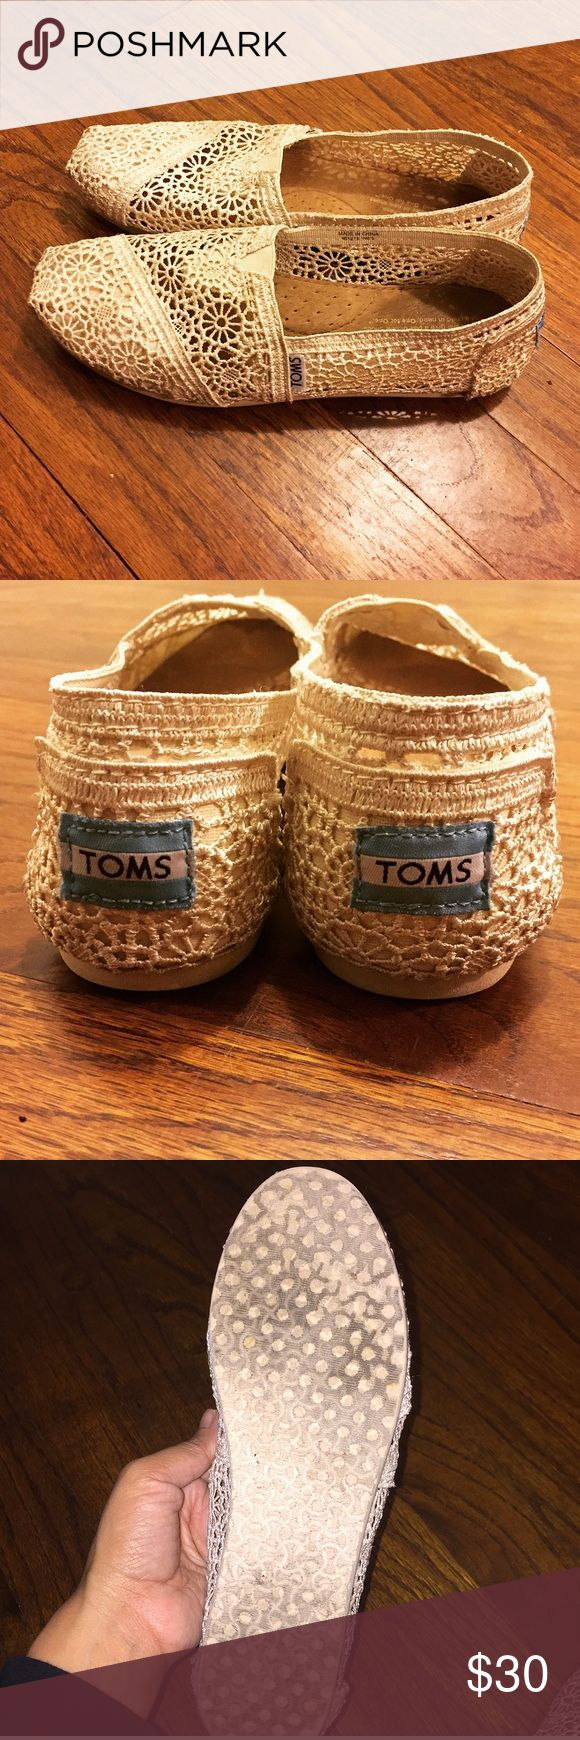 Cream Toms Pretty cream/off white  lace Toms 6.5 In great condition no rips. Some minor dirt spots, the camera couldn't pick up! Inside is normal wear. And bottom sole is good! Please see pics any ? Please feel free to ask! Needs a lil TLC and should be good. Super cute won't last long... offers accepted TOMS Shoes